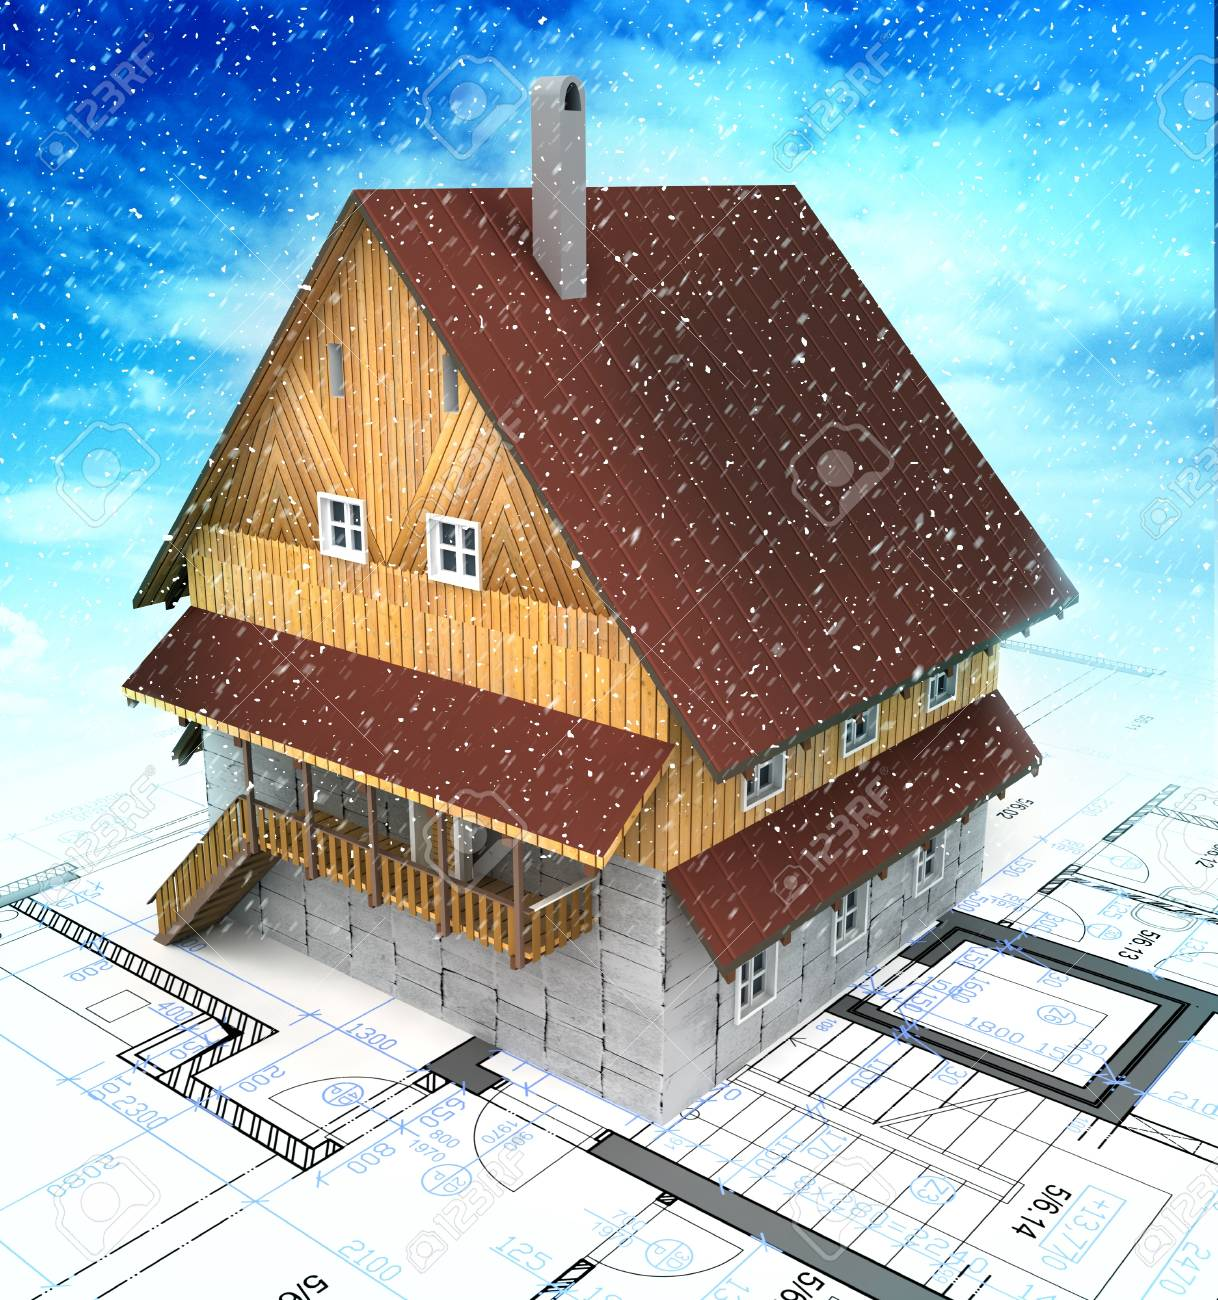 Mountain building house with layout plan at cloudys snowfall illustration Stock Photo - 17121067